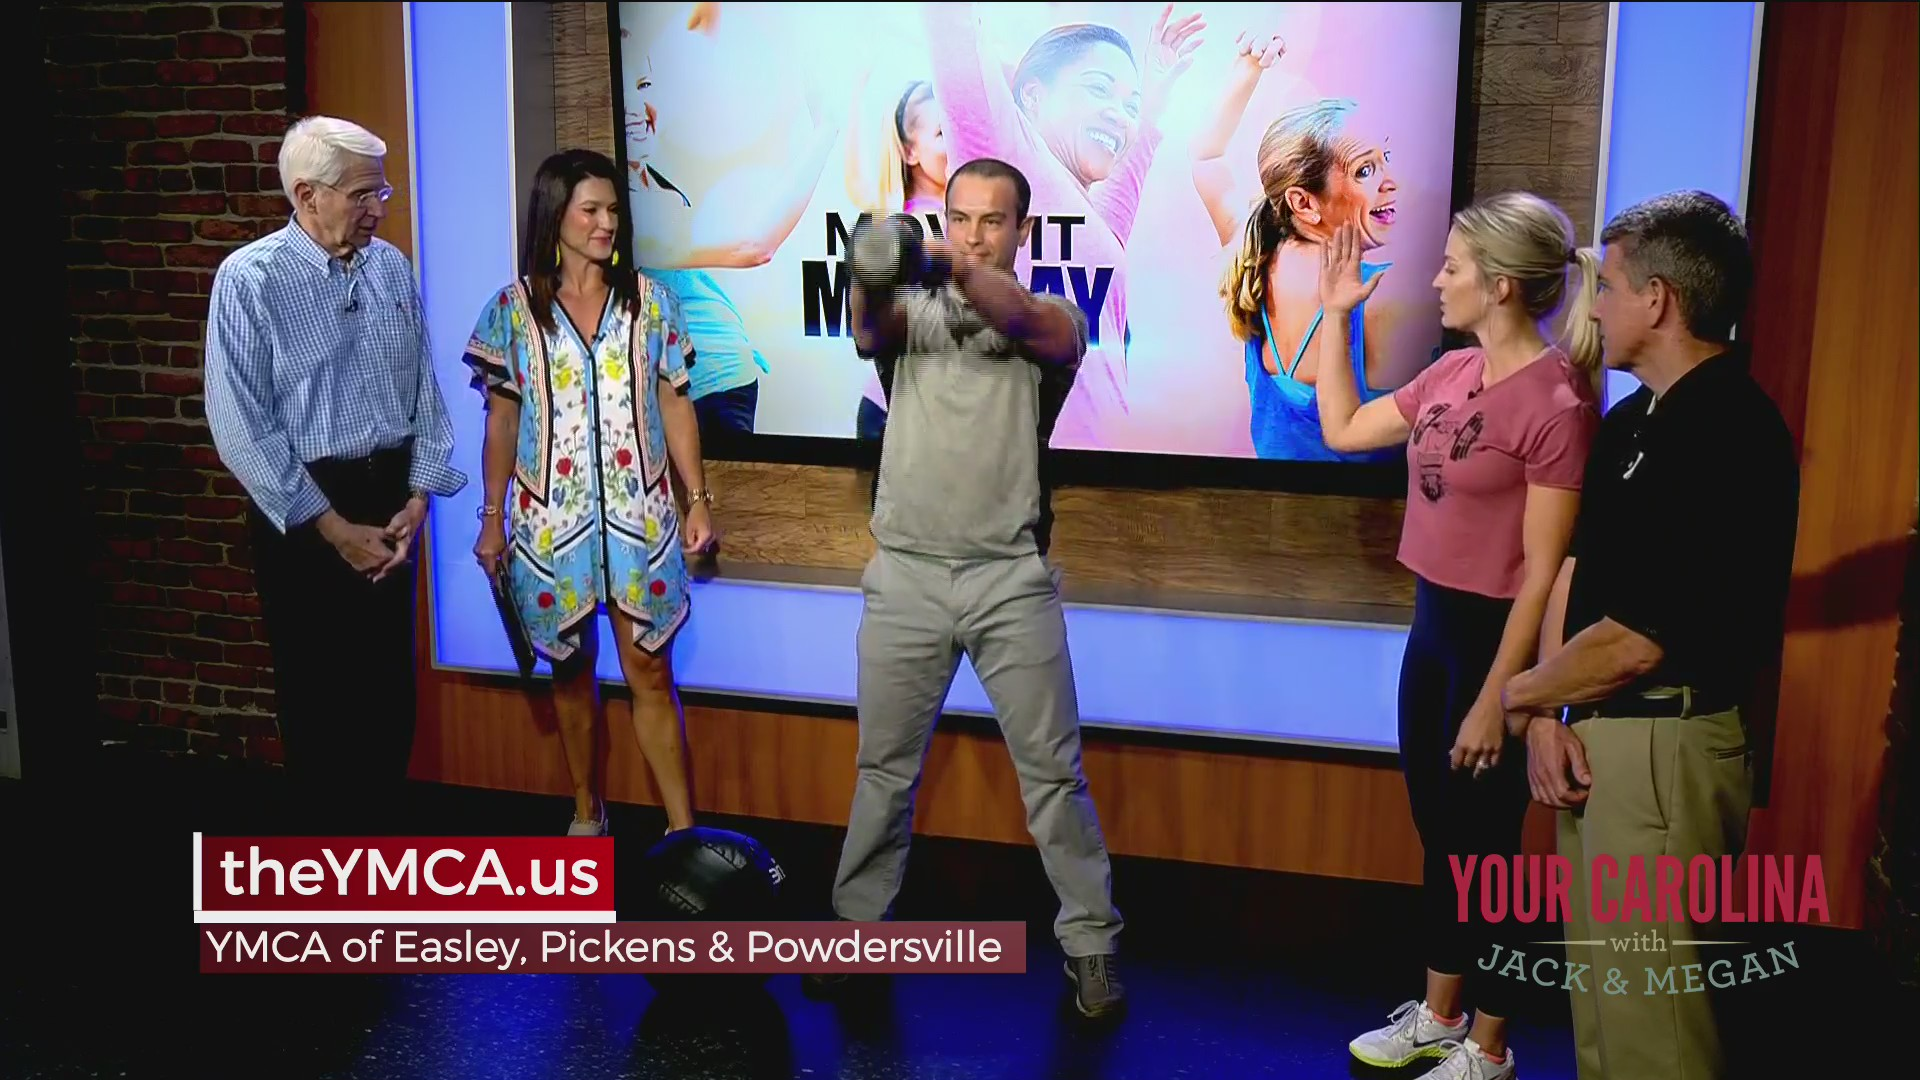 Move It Monday - YMCA of Easley, Pickens & Powdersville